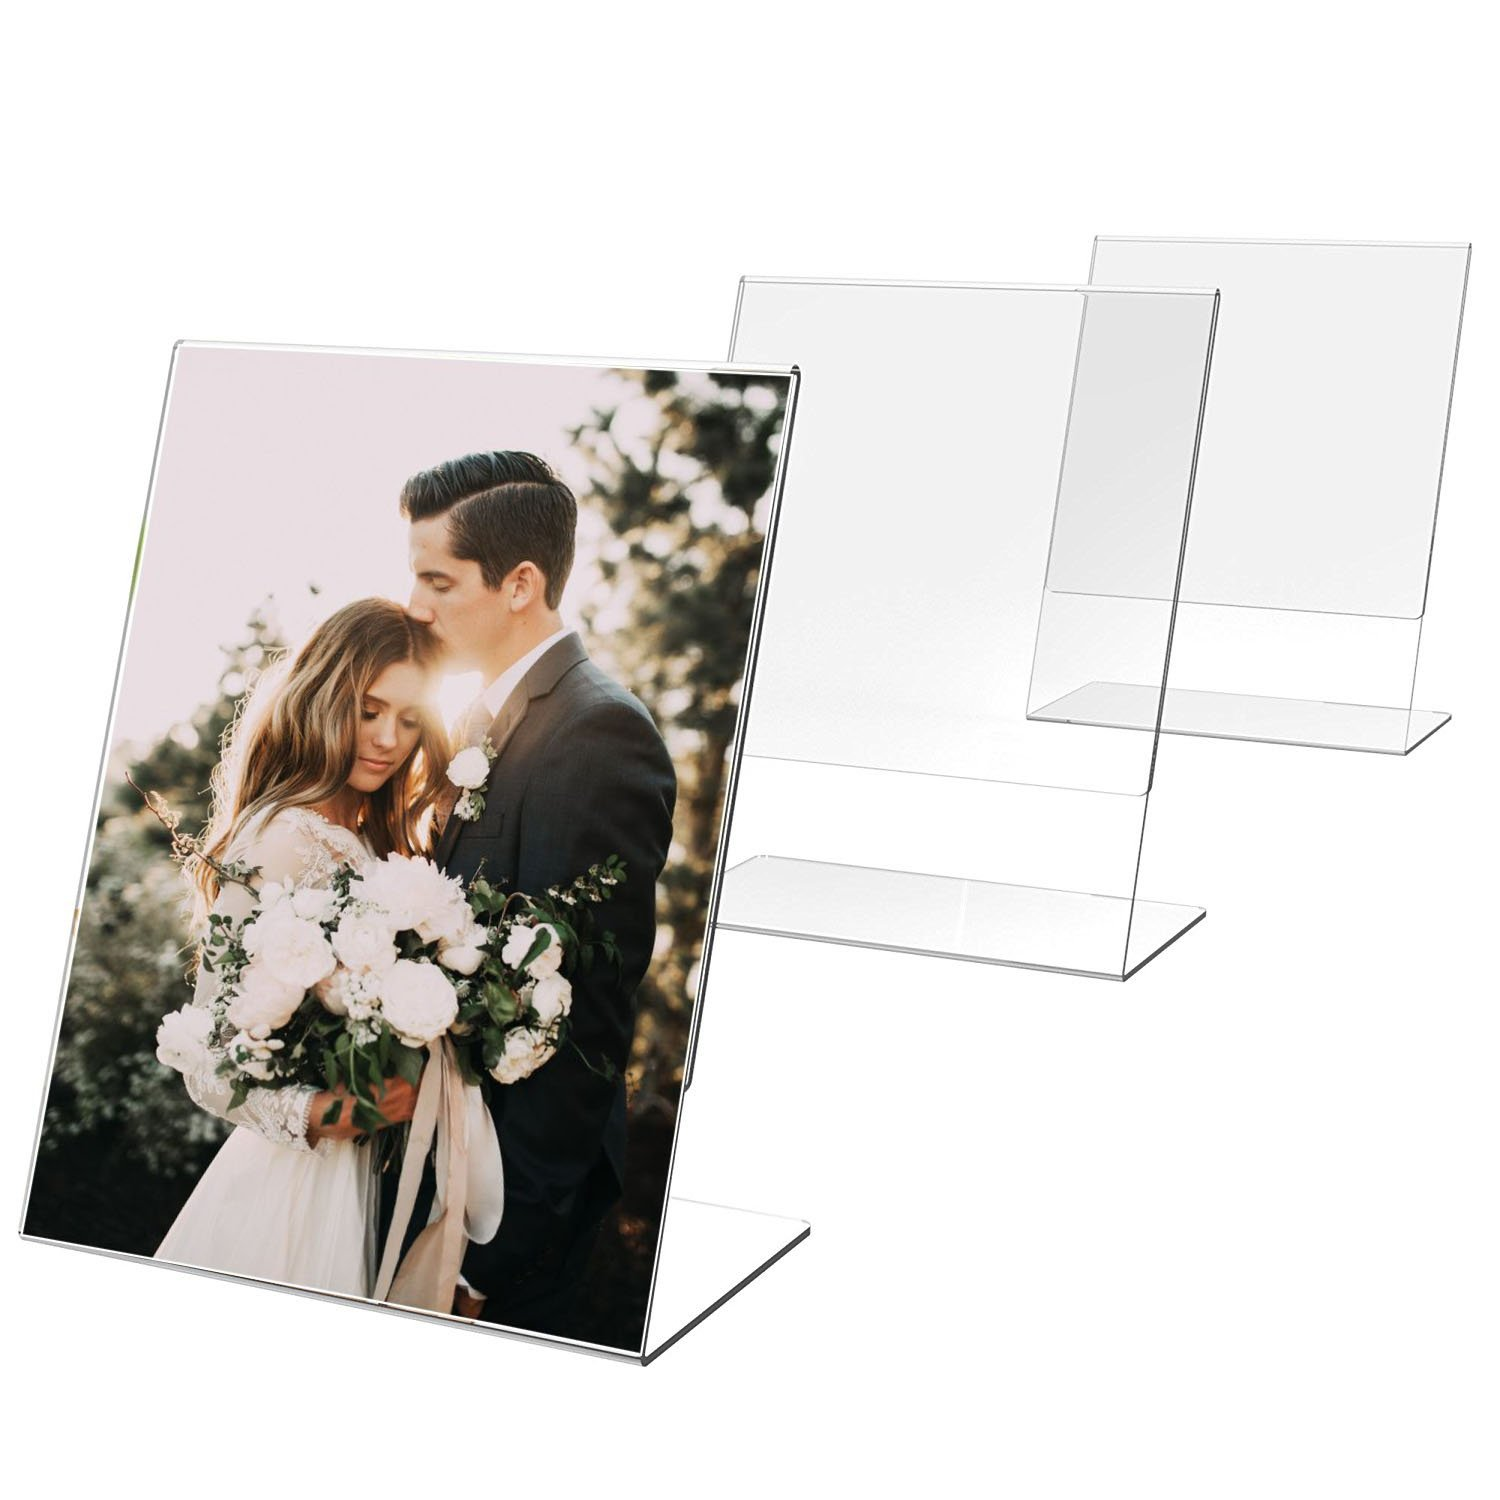 TWING Clear Plastic Table Menu Stand, Card Display, Upright Ad Photo Frame, Promo, 6-Pack 5''x7'' Acrylic Sign Holder